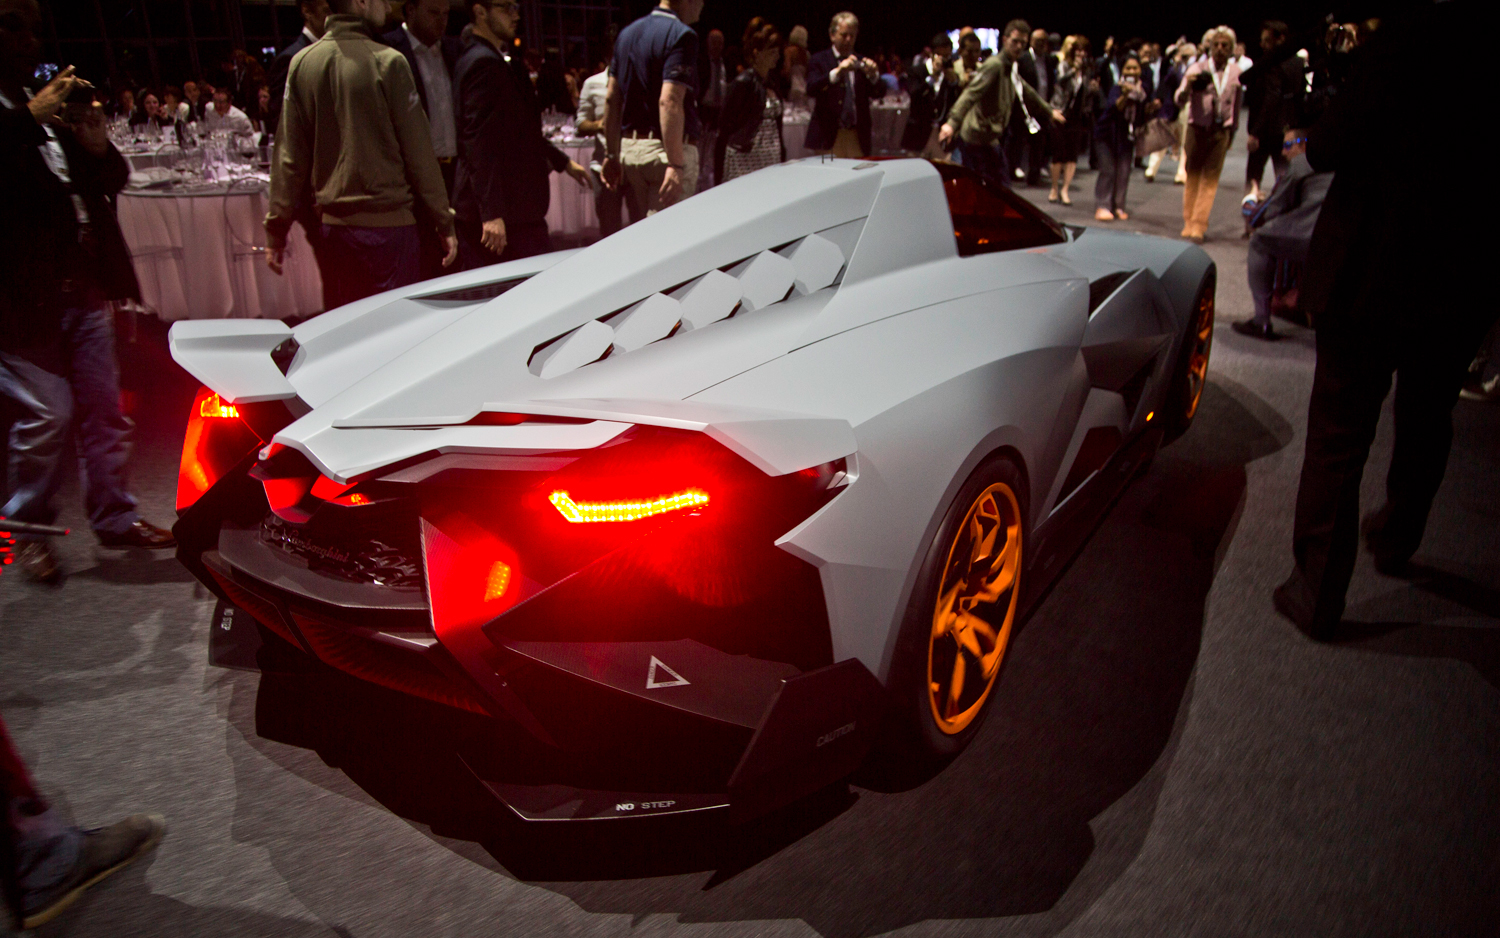 The Lamborghini Egoista The Maddest Bull Ever Carhoots